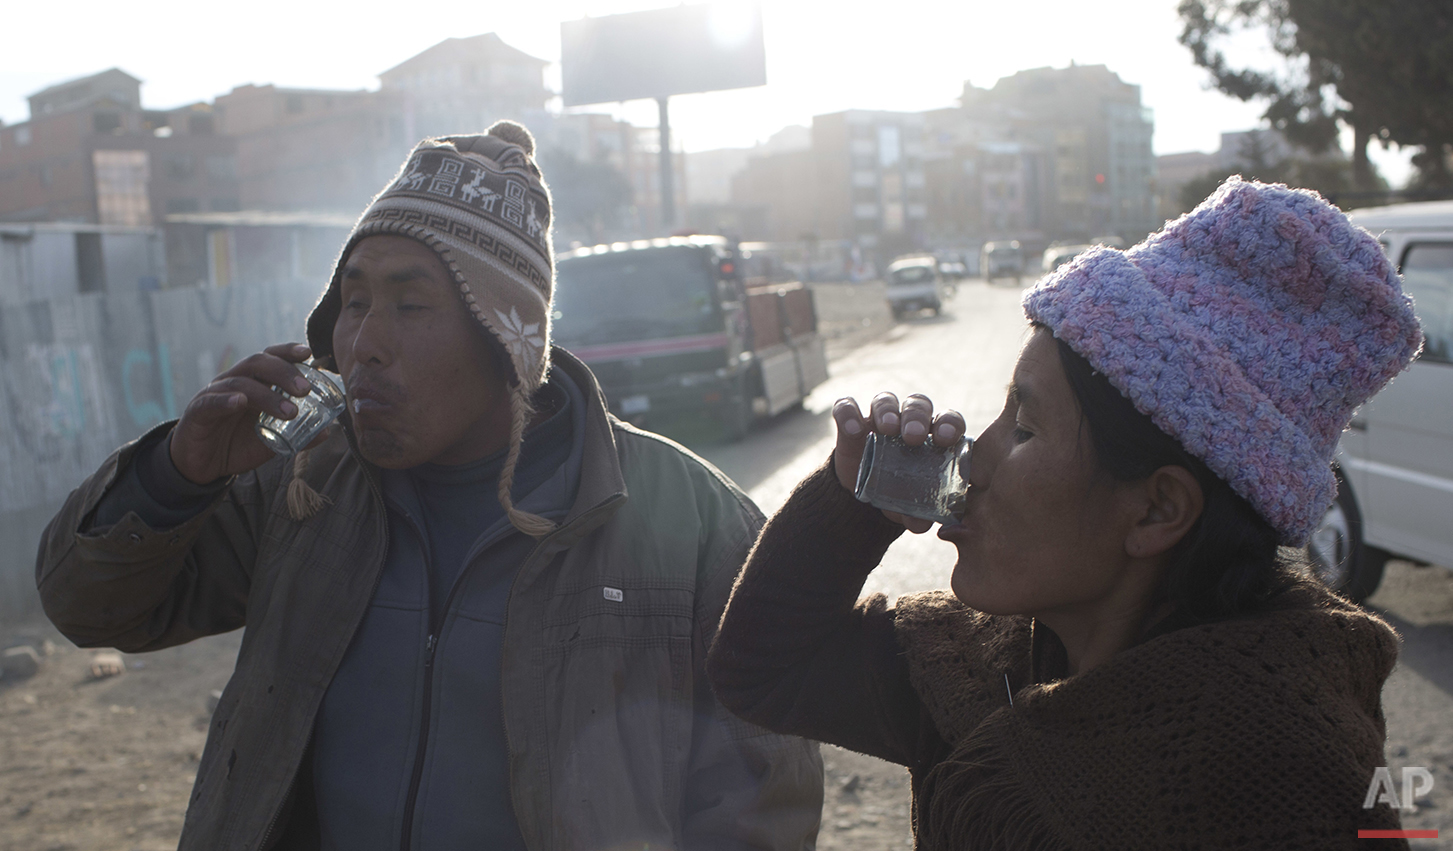 """In this June 8, 2016 photo, Lorenzo Saldias and his wife drink donkey milk from a vendor in the streets of El Alto, Bolivia. """"Donkey milk is medicine that heals,"""" Salvias said. """"I had pneumonia, my back hurt and I had the chills. Now it's taking effect. I drink it with my wife."""" (AP Photo/Juan Karita)"""